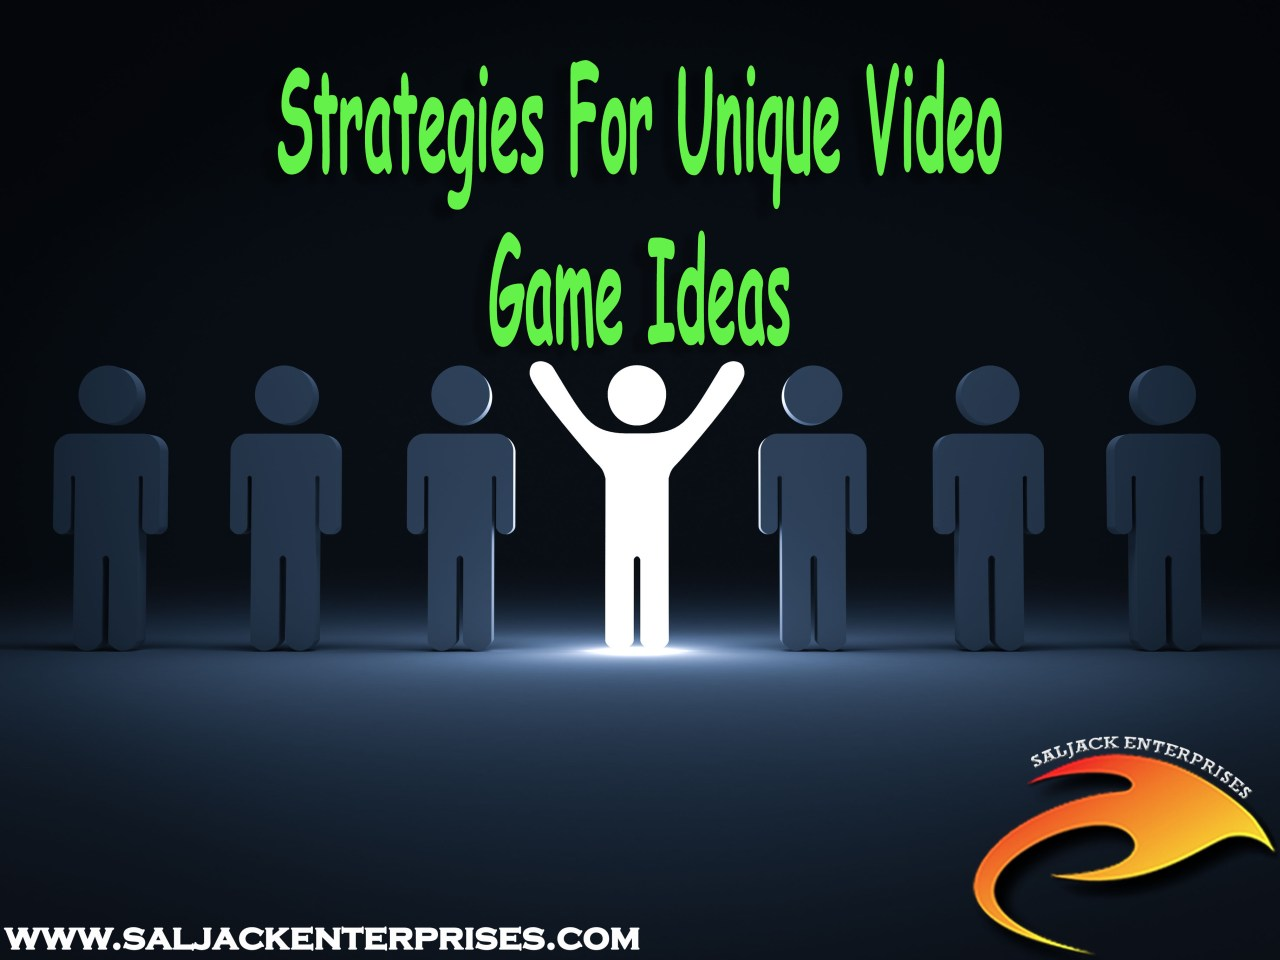 Strategies For Unique Video Game Ideas. Presented by Saljack Enterprises. Gaming. Media & Entertainment.